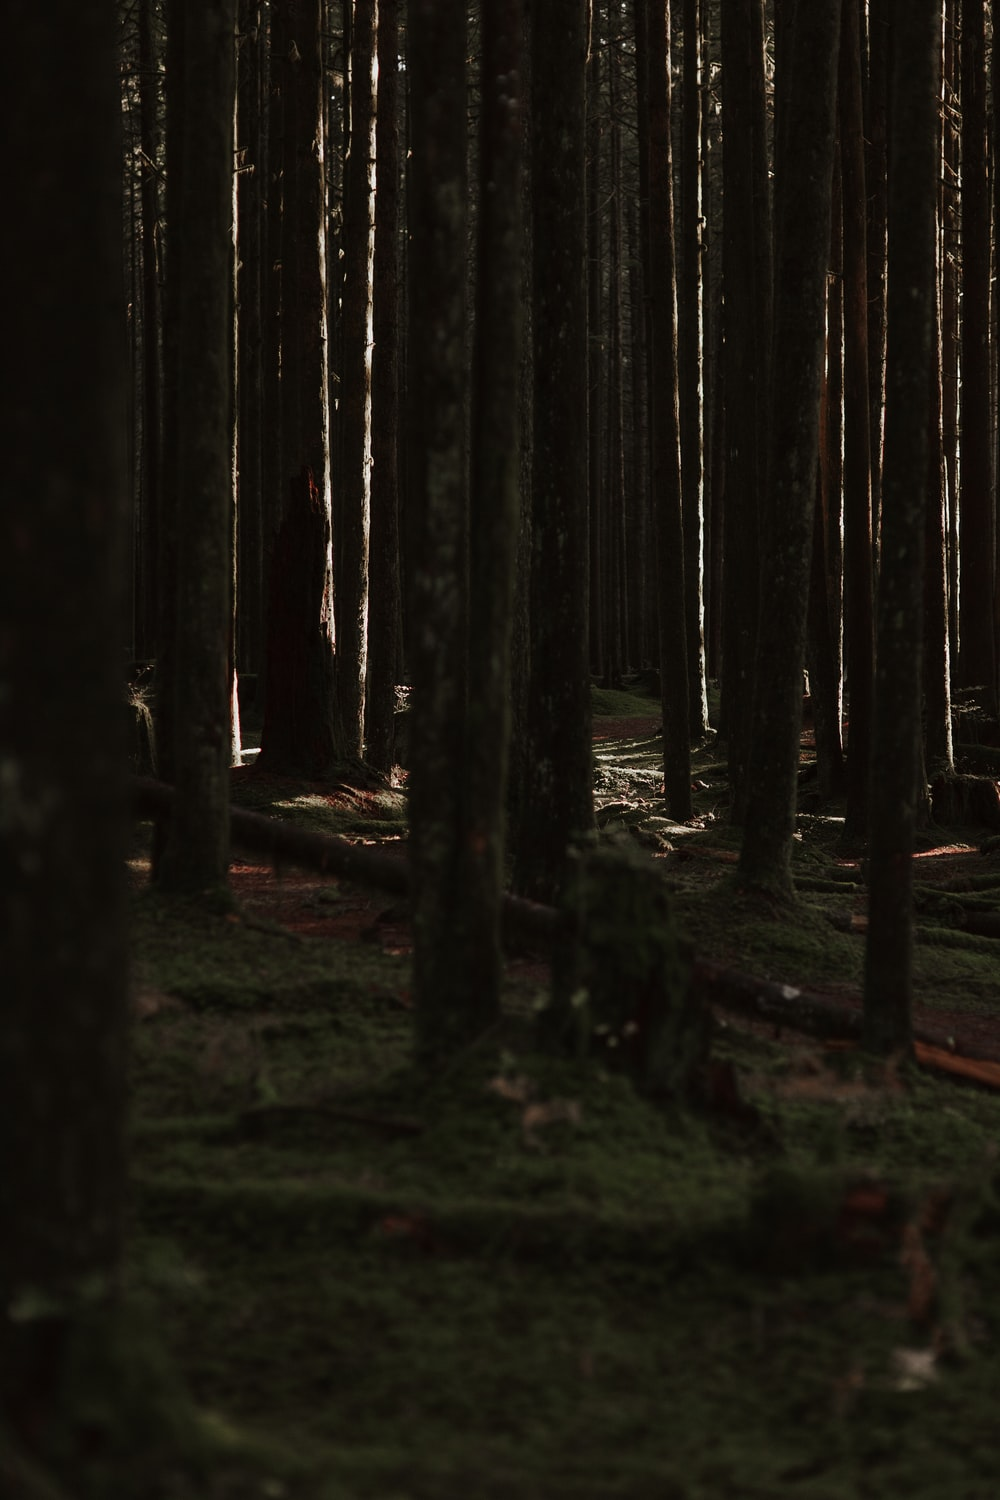 tall trees in forest during daytime